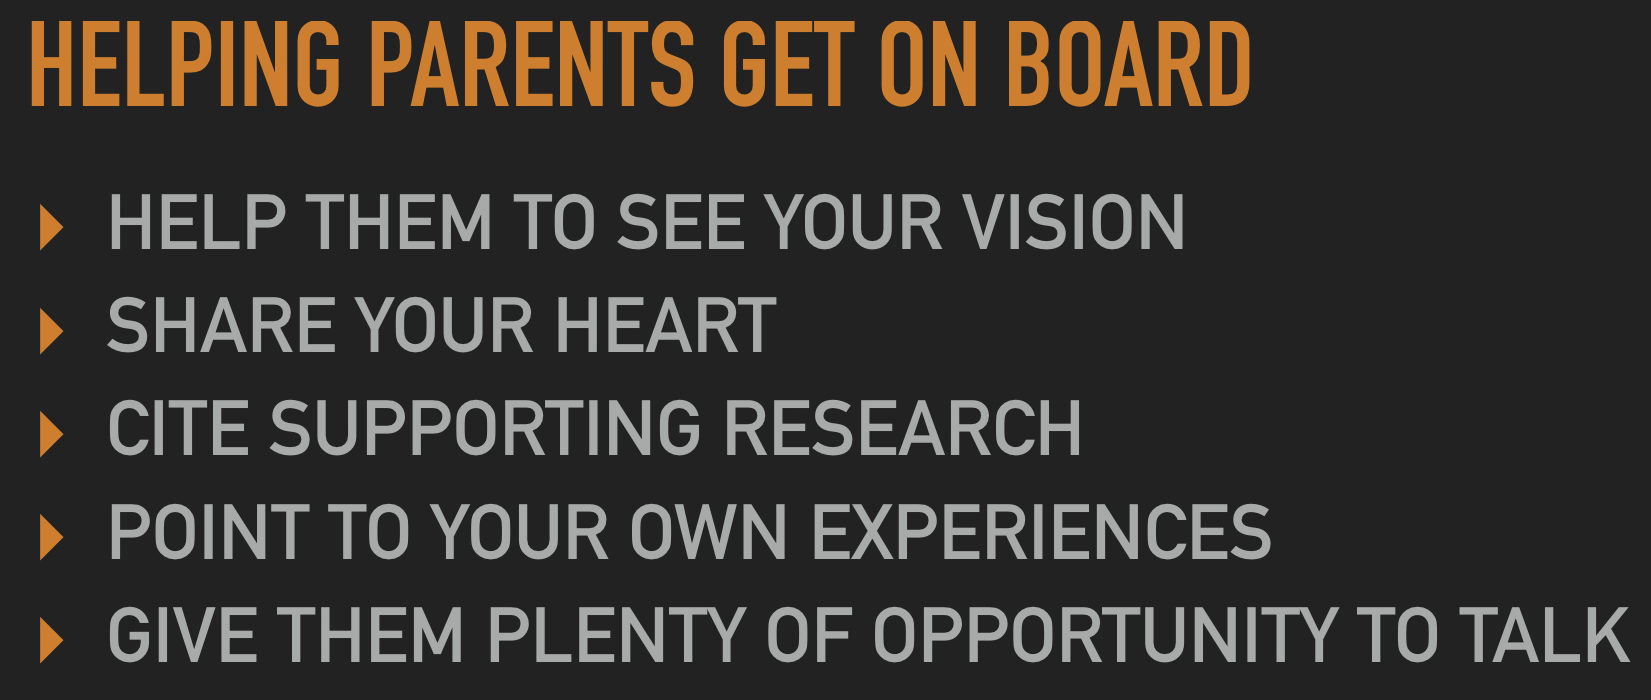 Getting parents on board.001